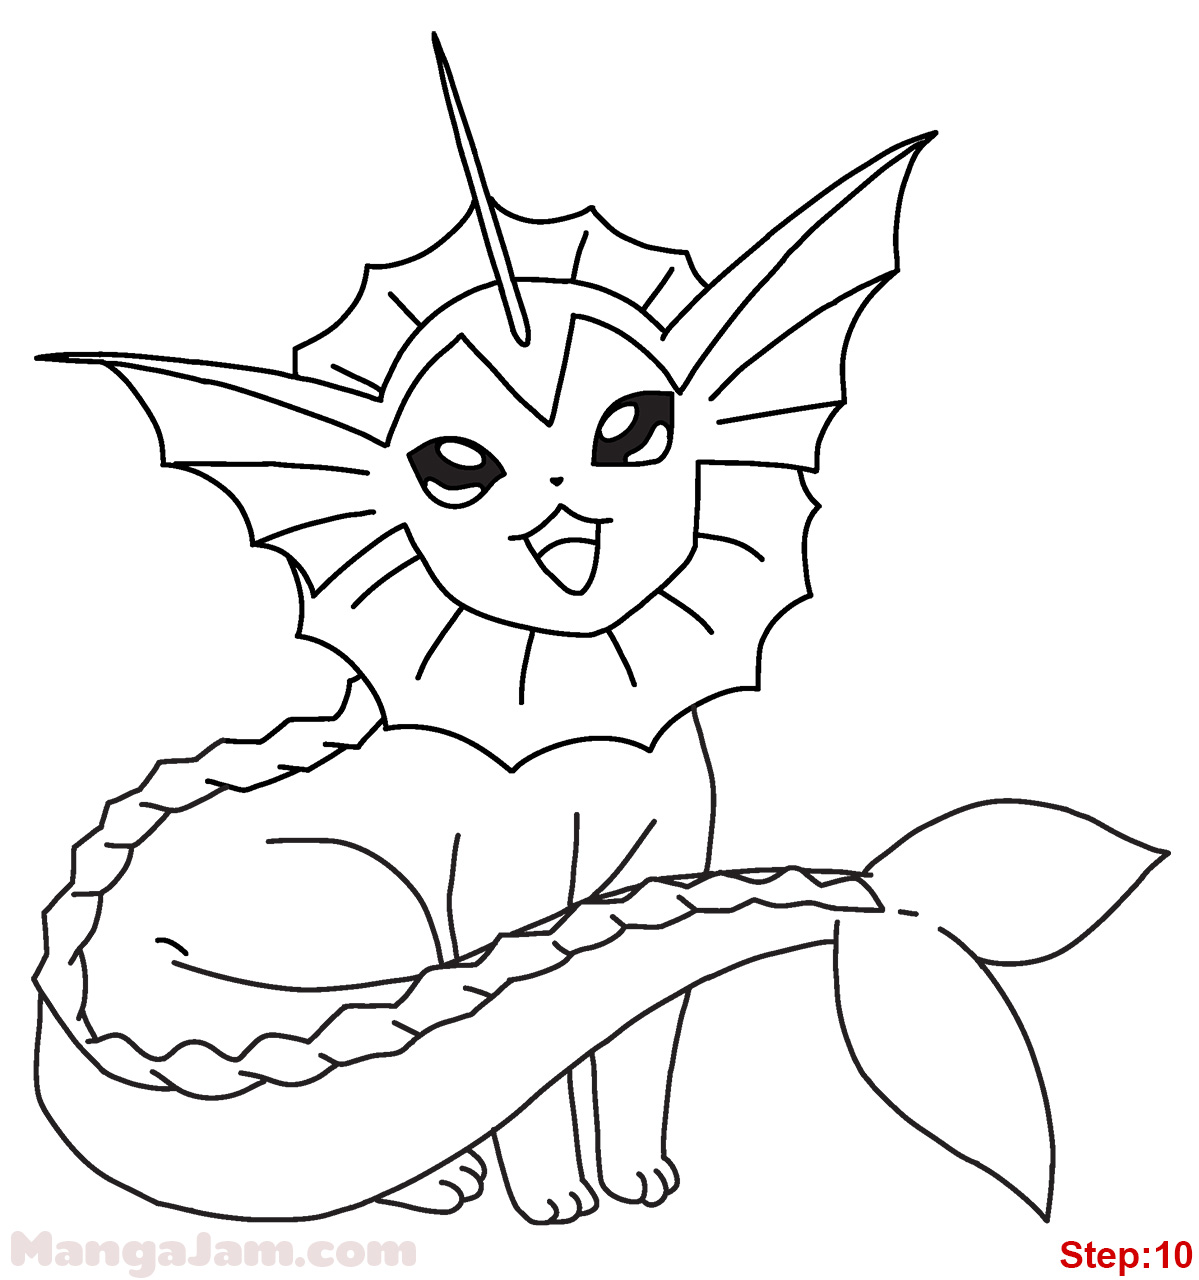 Leafeon Lineart 383566569 in addition How Draw Vaporeon Pokemon besides Pokemon Coloring Pages Eevee Evolutions as well 572 Se Pokemon as well File Name Eevee Pokemon Coloring Pages   Resolution 700 X 500. on leafeon coloring pages